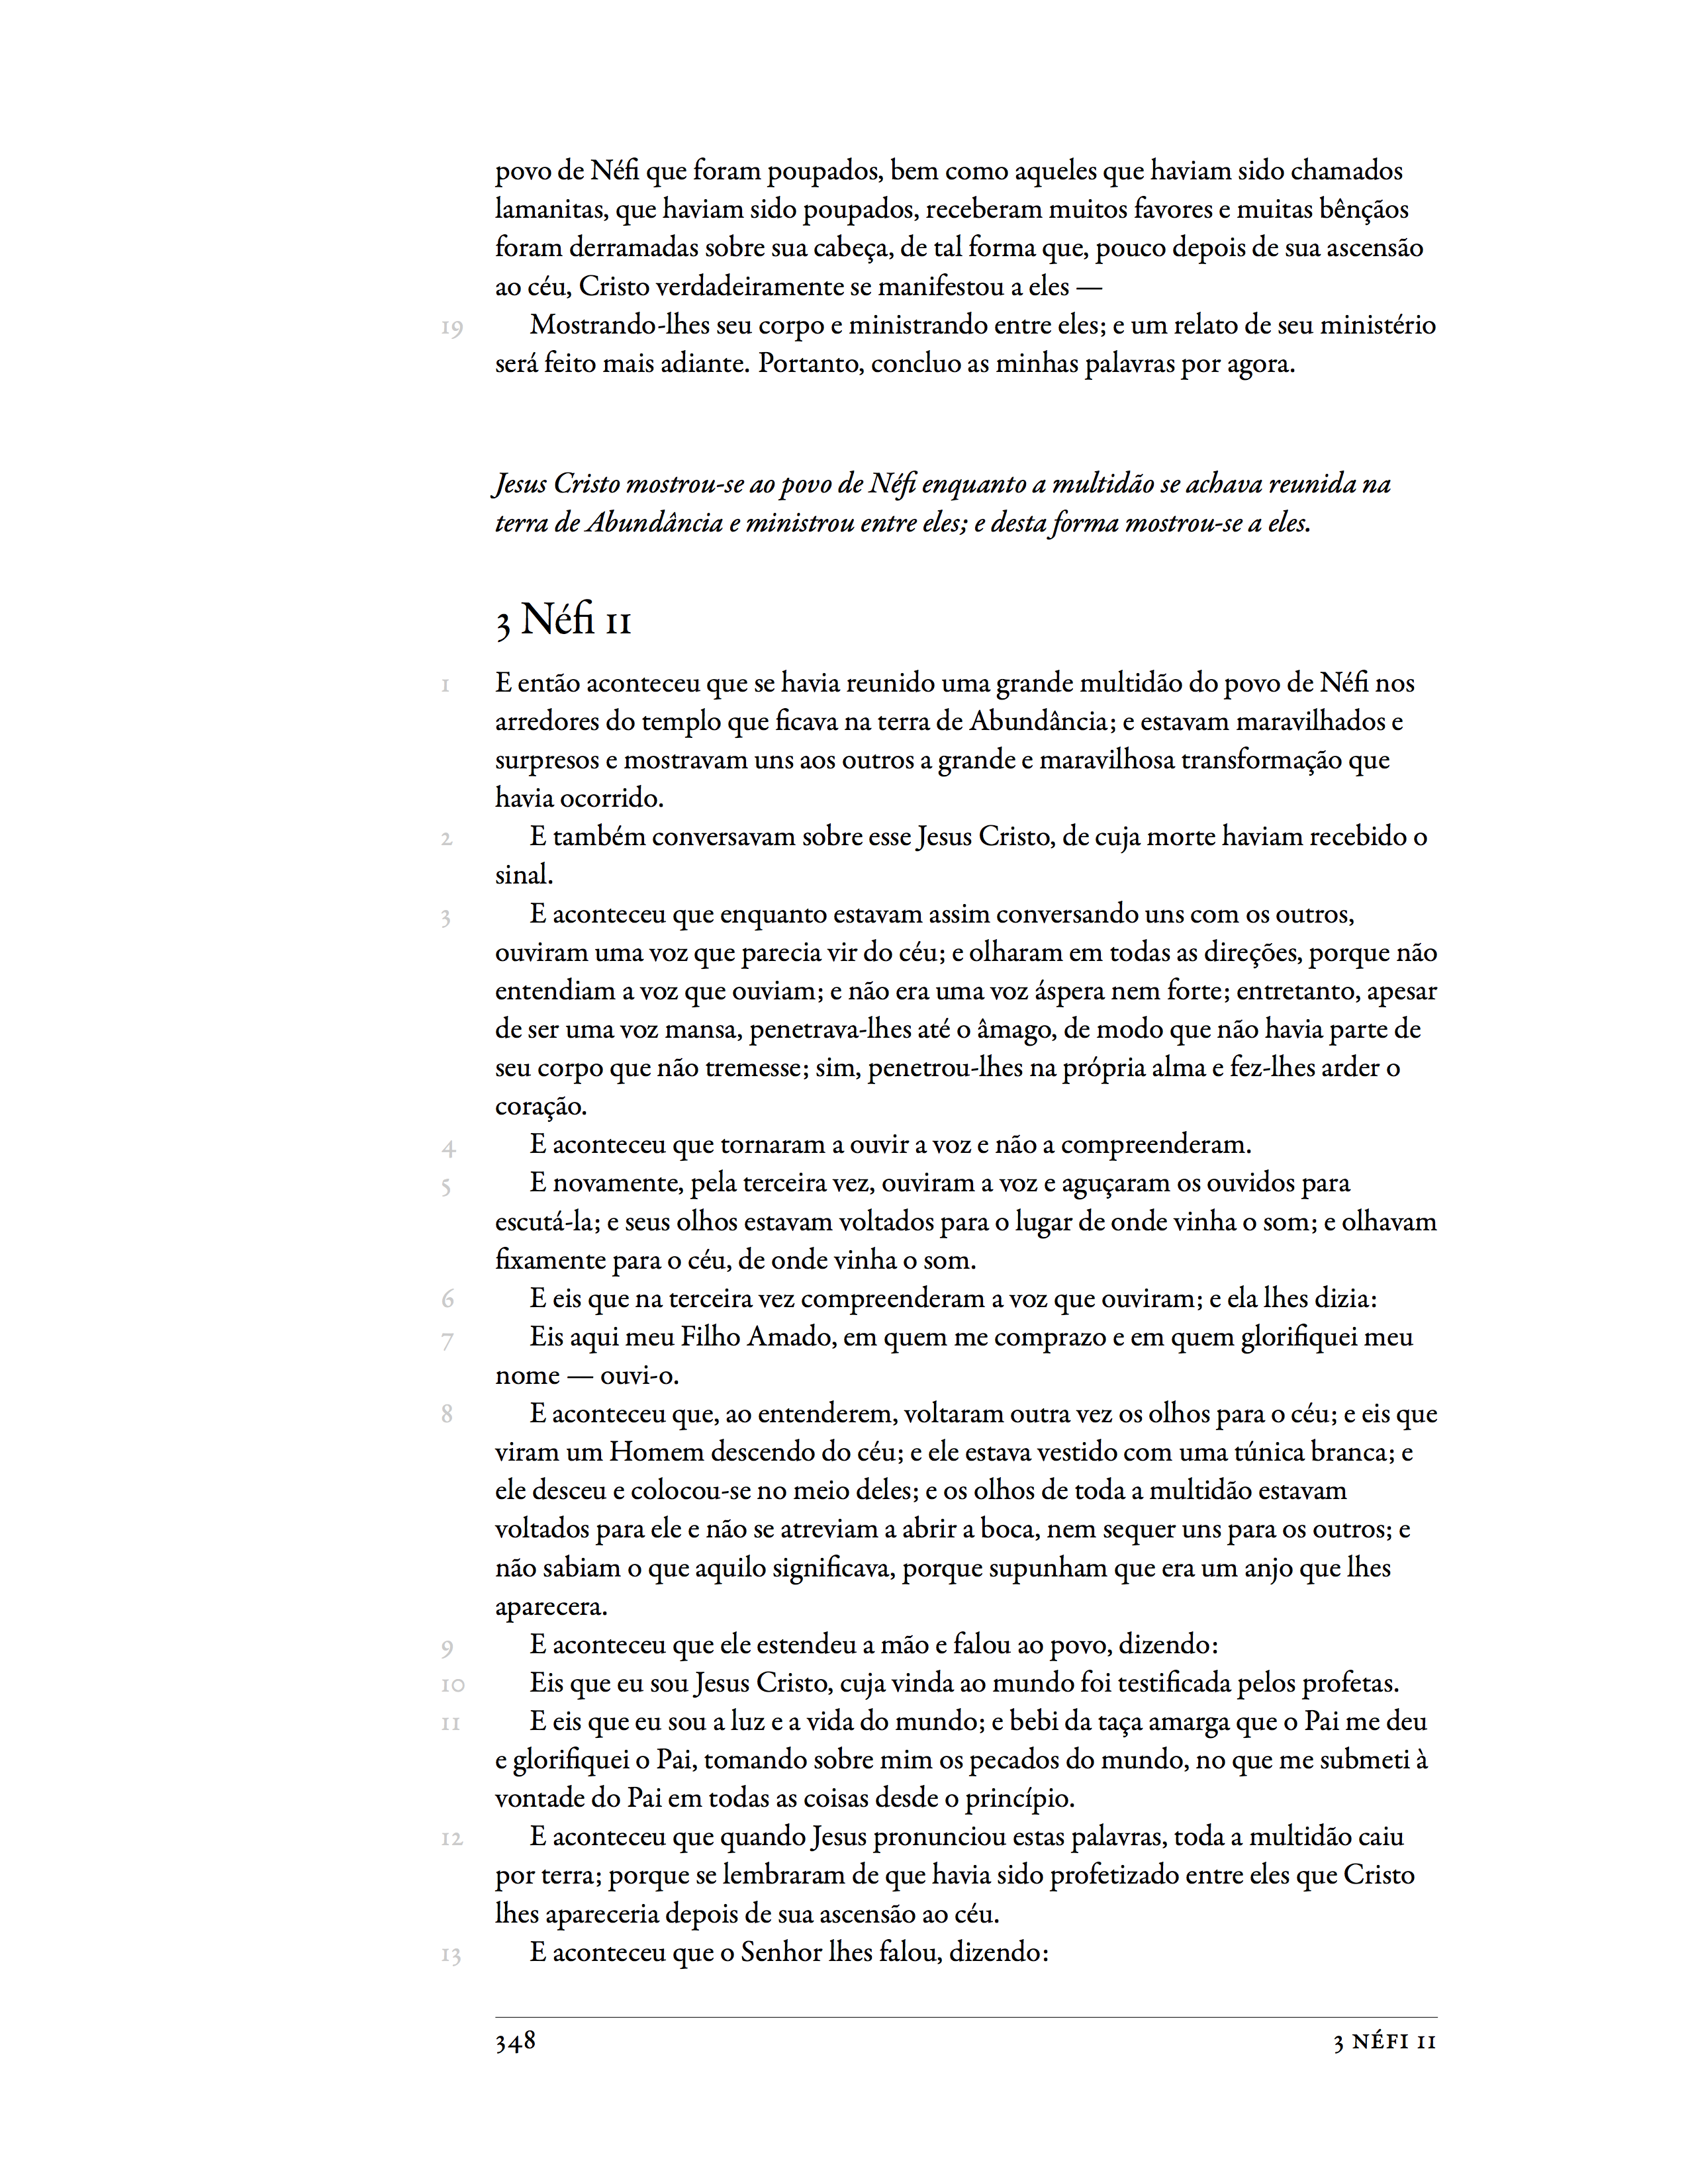 projects/study-edition/por-bofm/study-edition-por-bofm-02.png